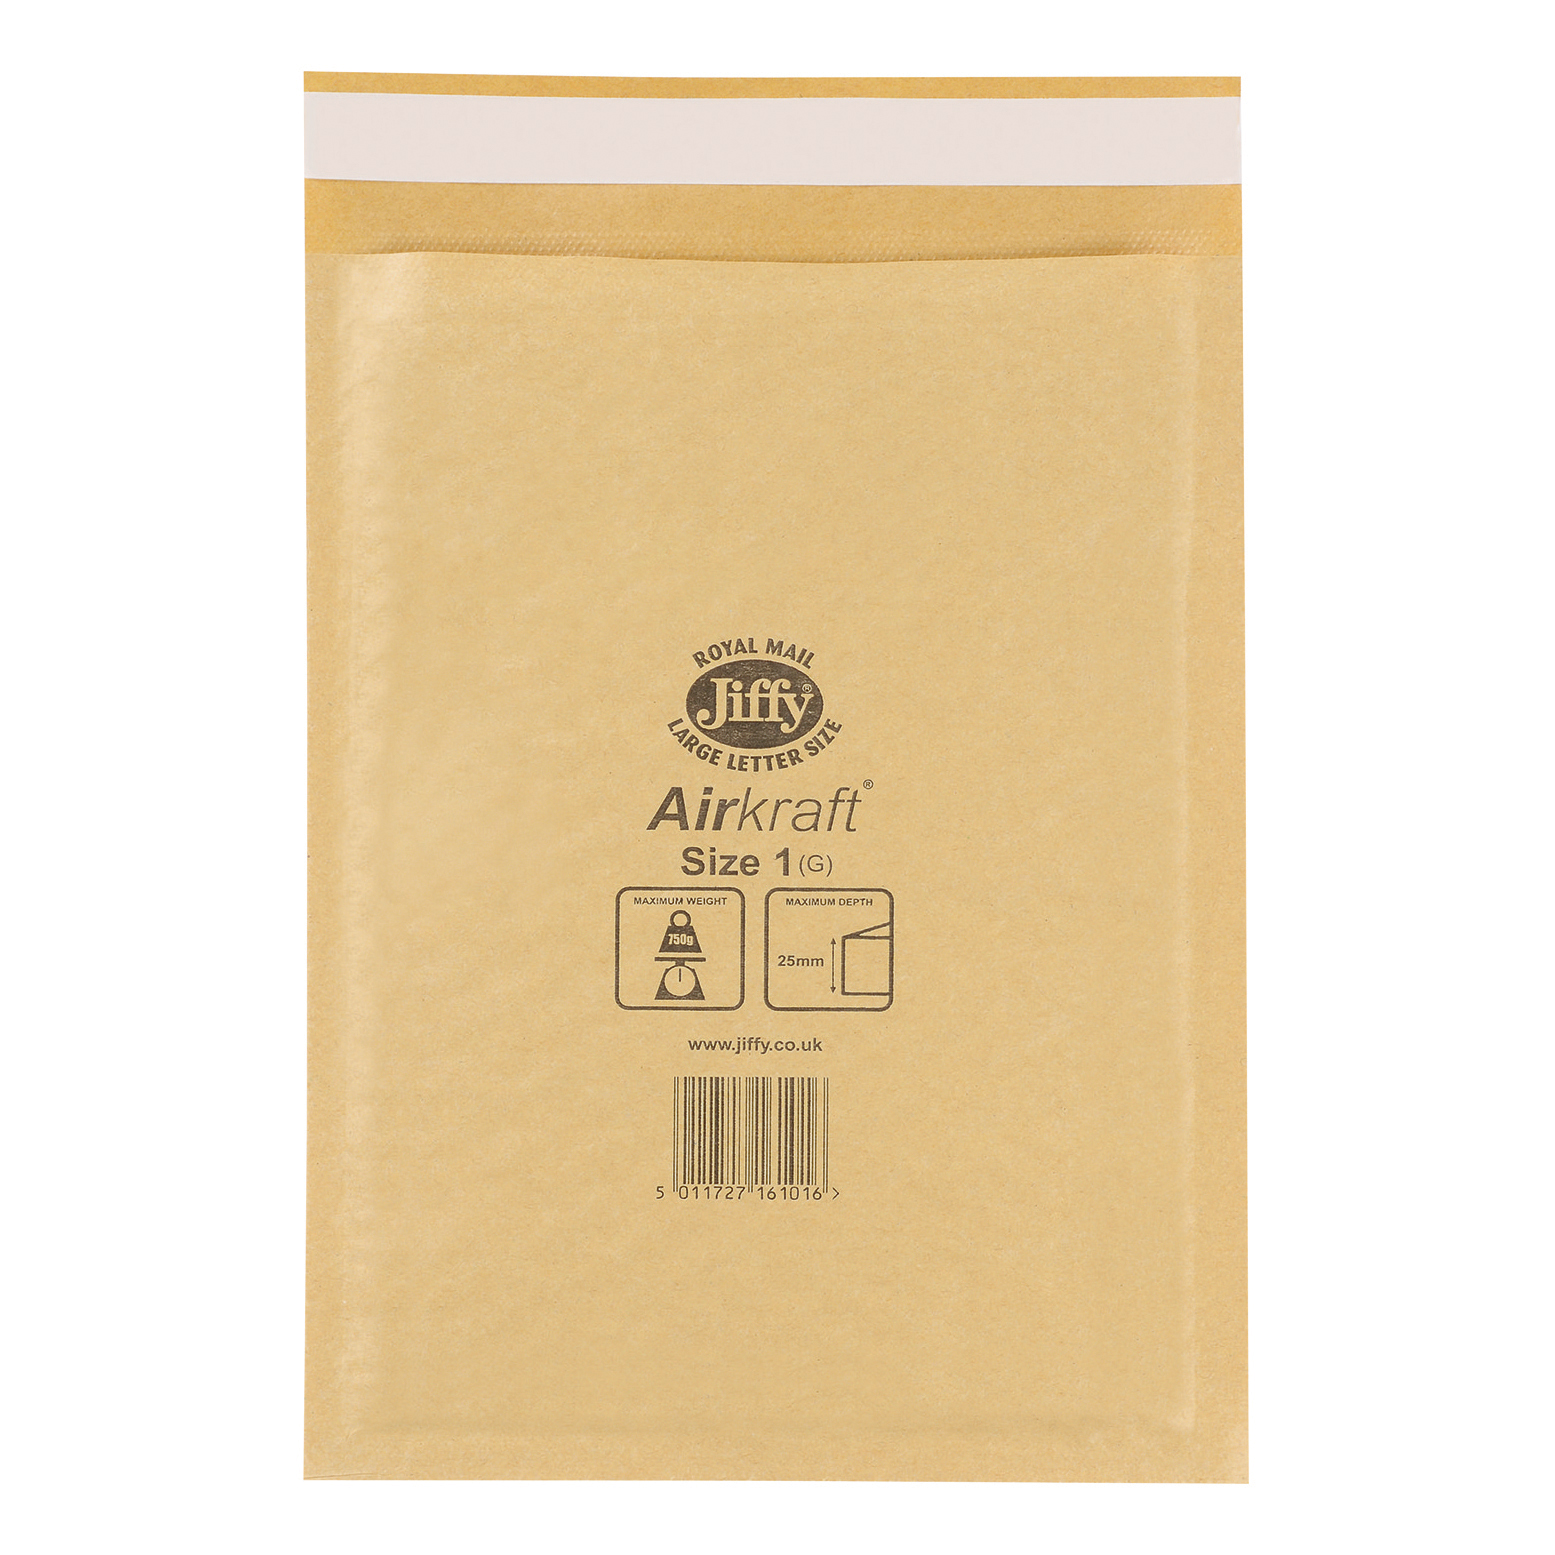 Jiffy Airkraft Bubble Bag Envelopes Size 1 170x245mm Gold Ref JL-GO-1 [Pack 100]